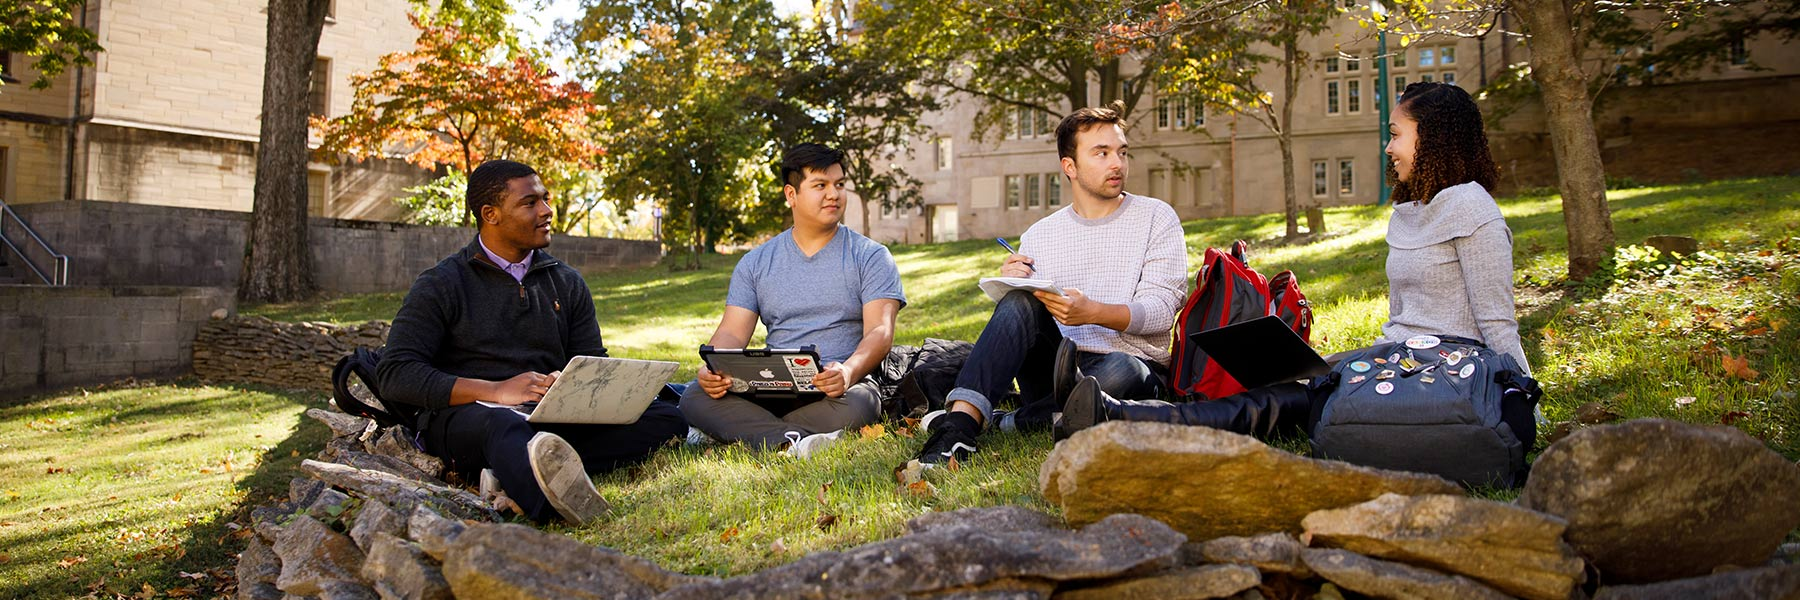 A group of students sits in a greenspace outdoors with their laptops.